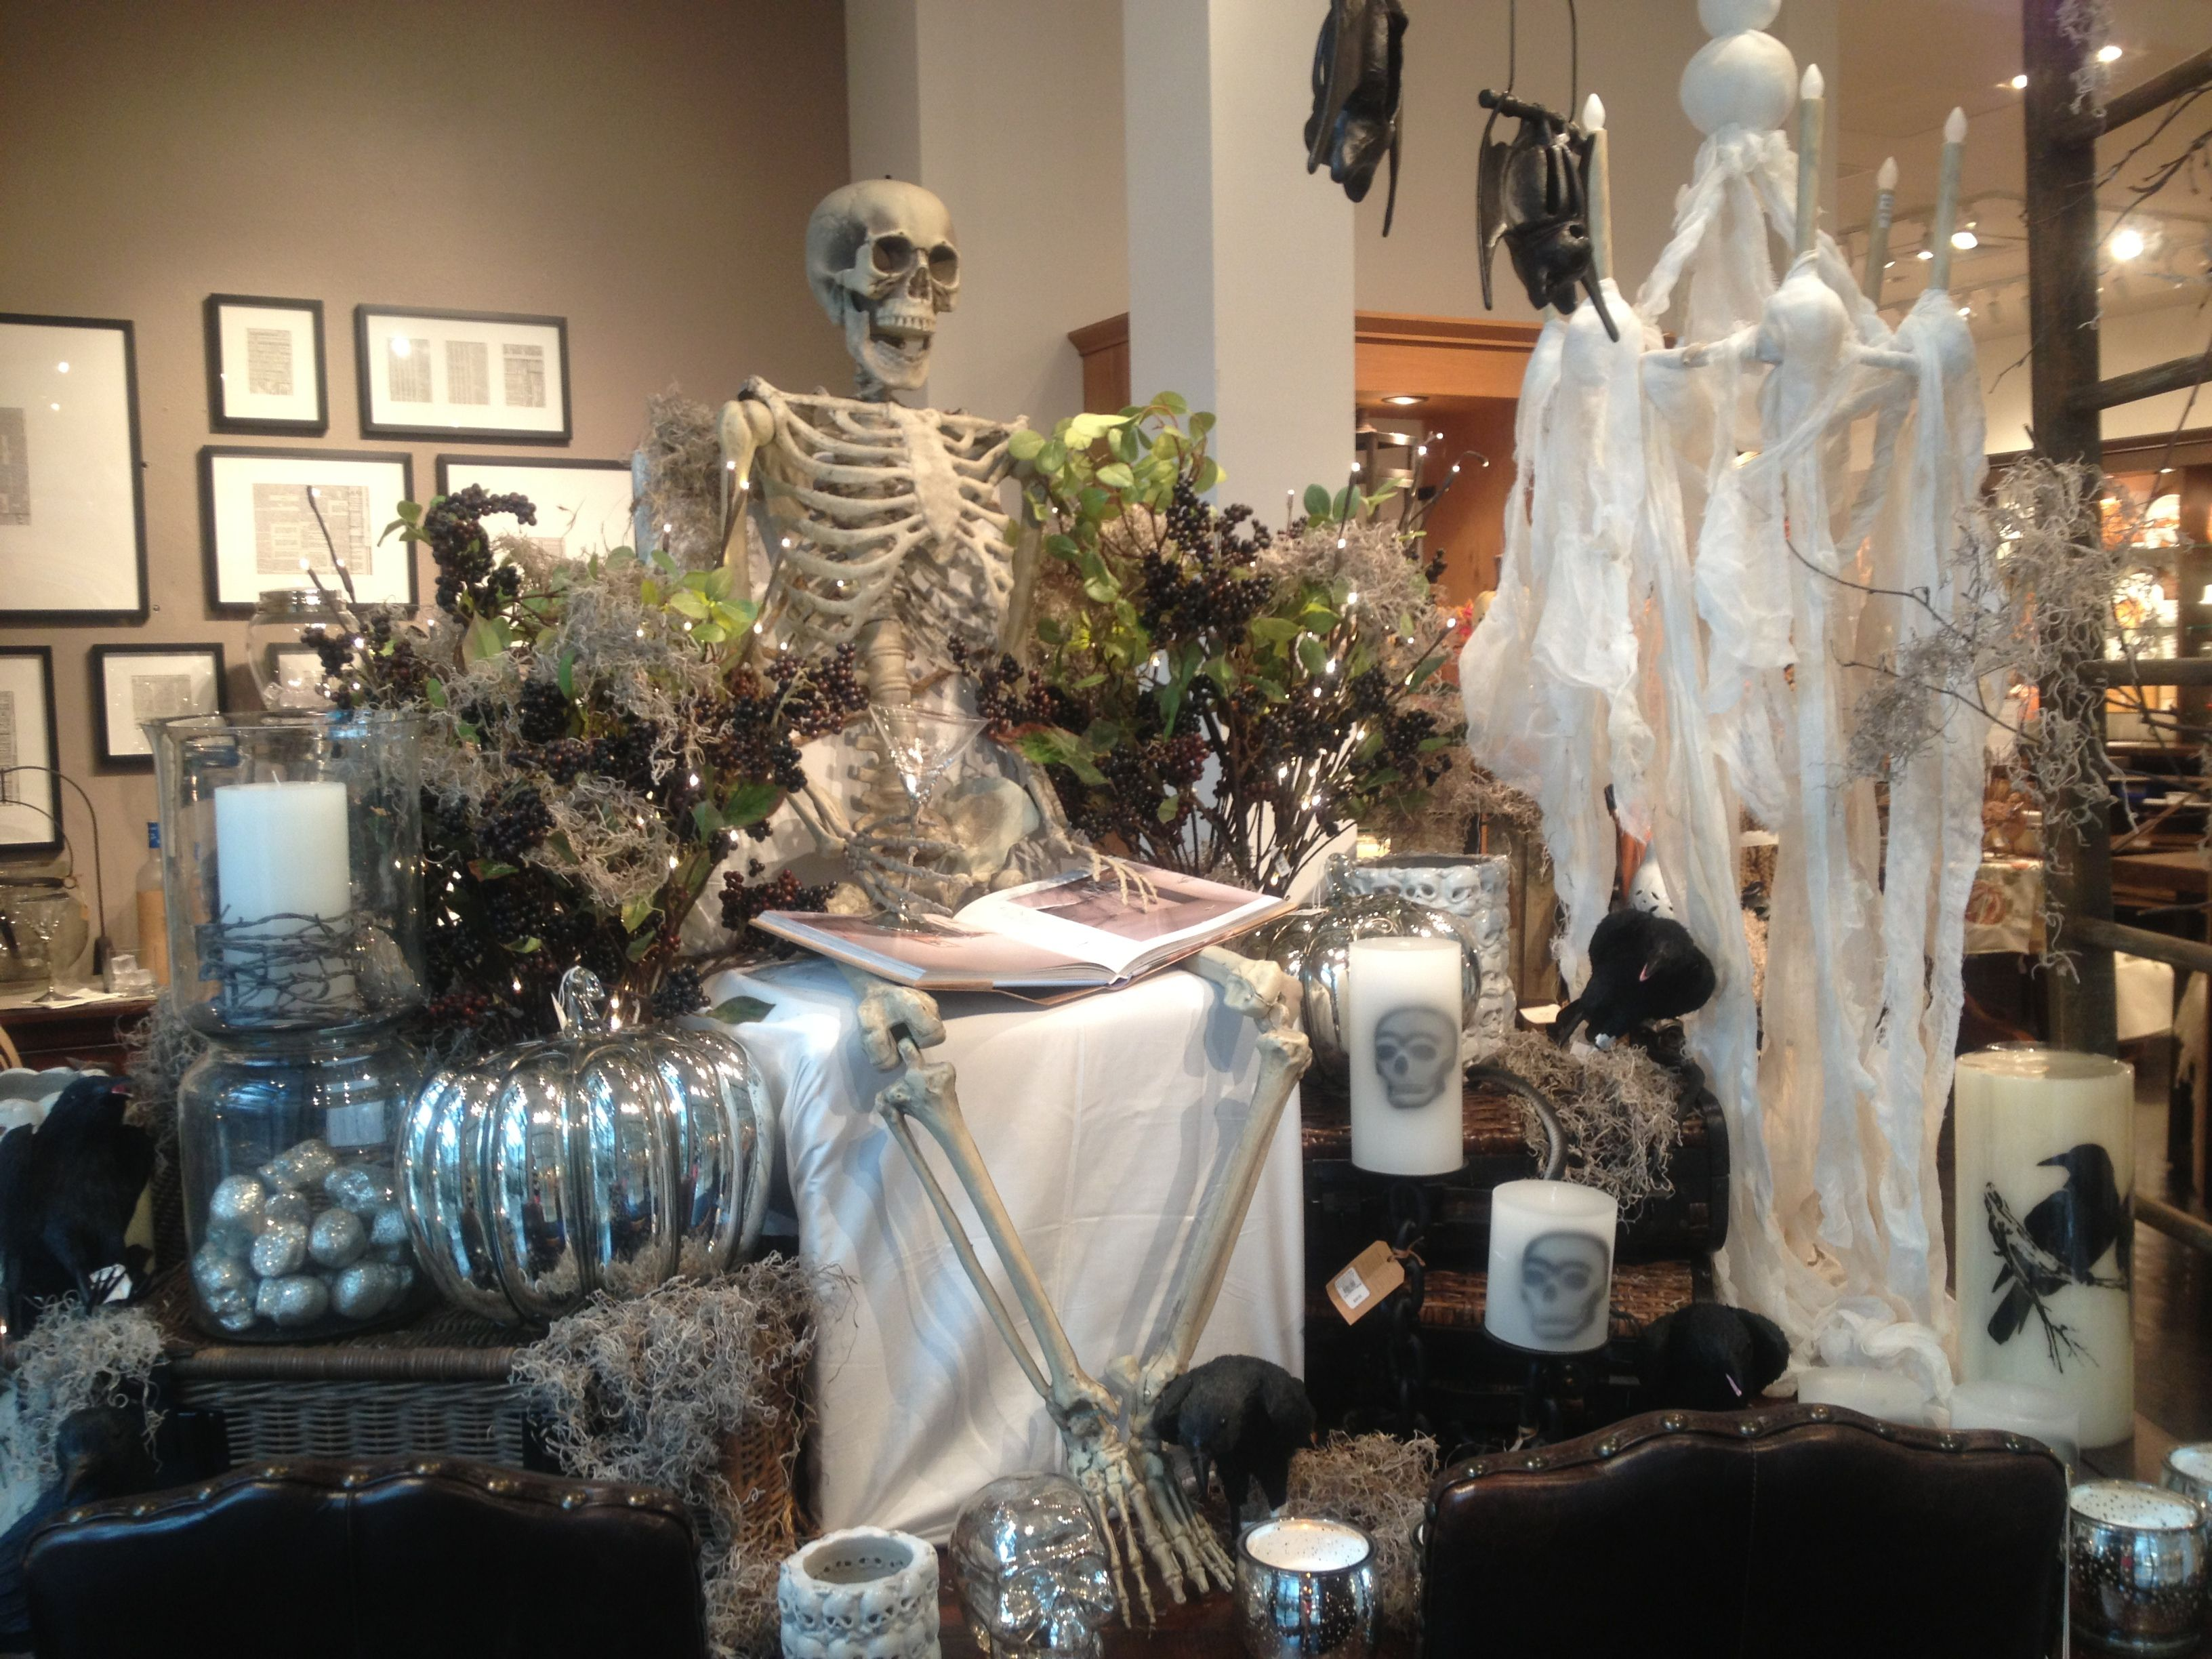 Pottery Barn Halloween Store Display Lots Of Halloween Spooky Ideas Here For Home Dec Pottery Barn Halloween Halloween Window Display Halloween Store Display